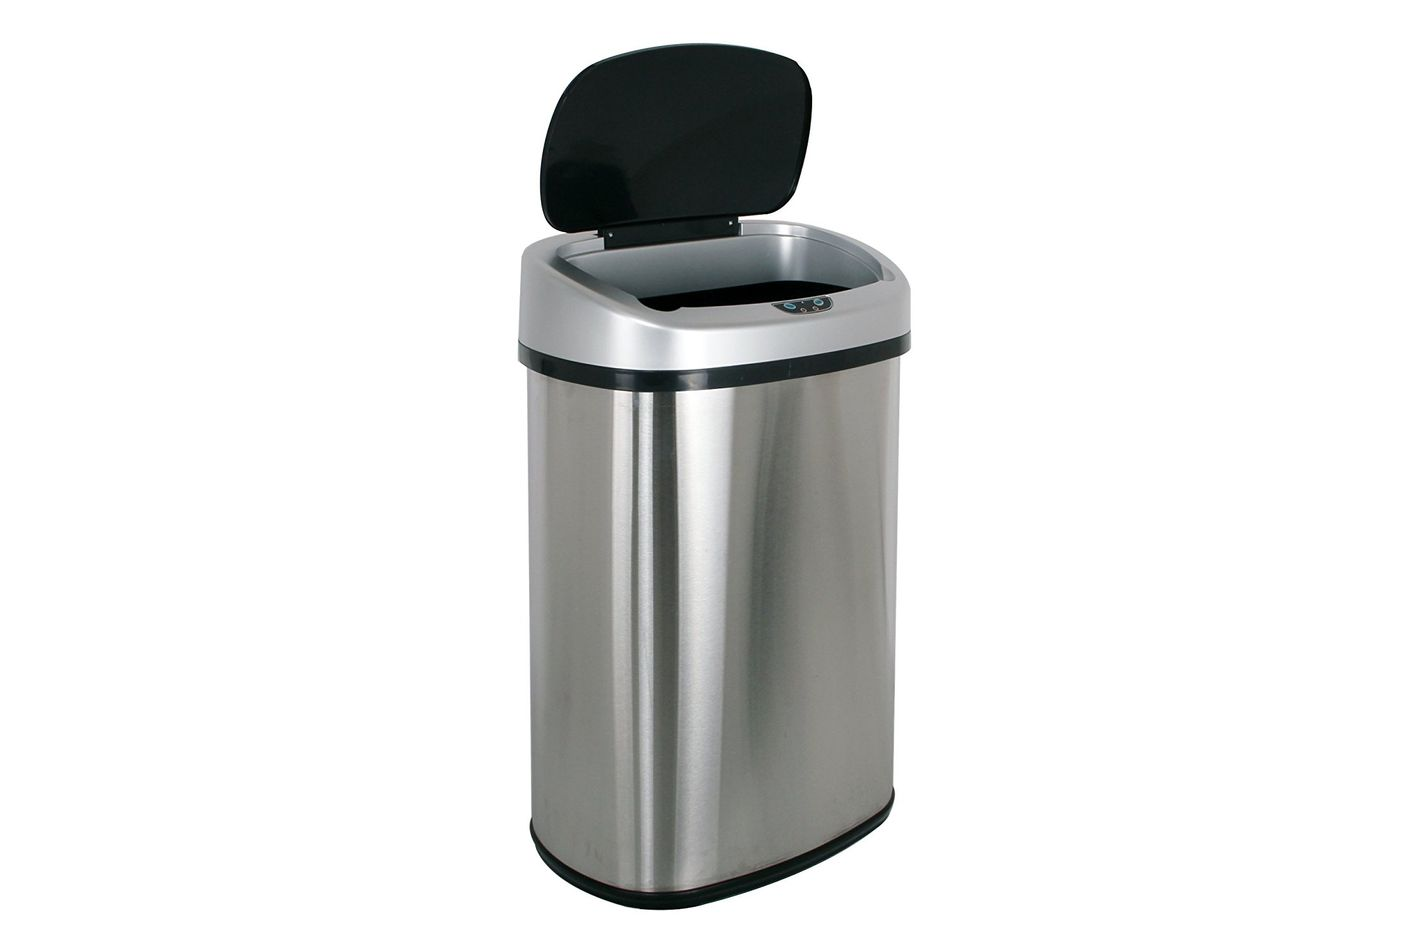 Best Trash Cans on Amazon, According to Reviewers